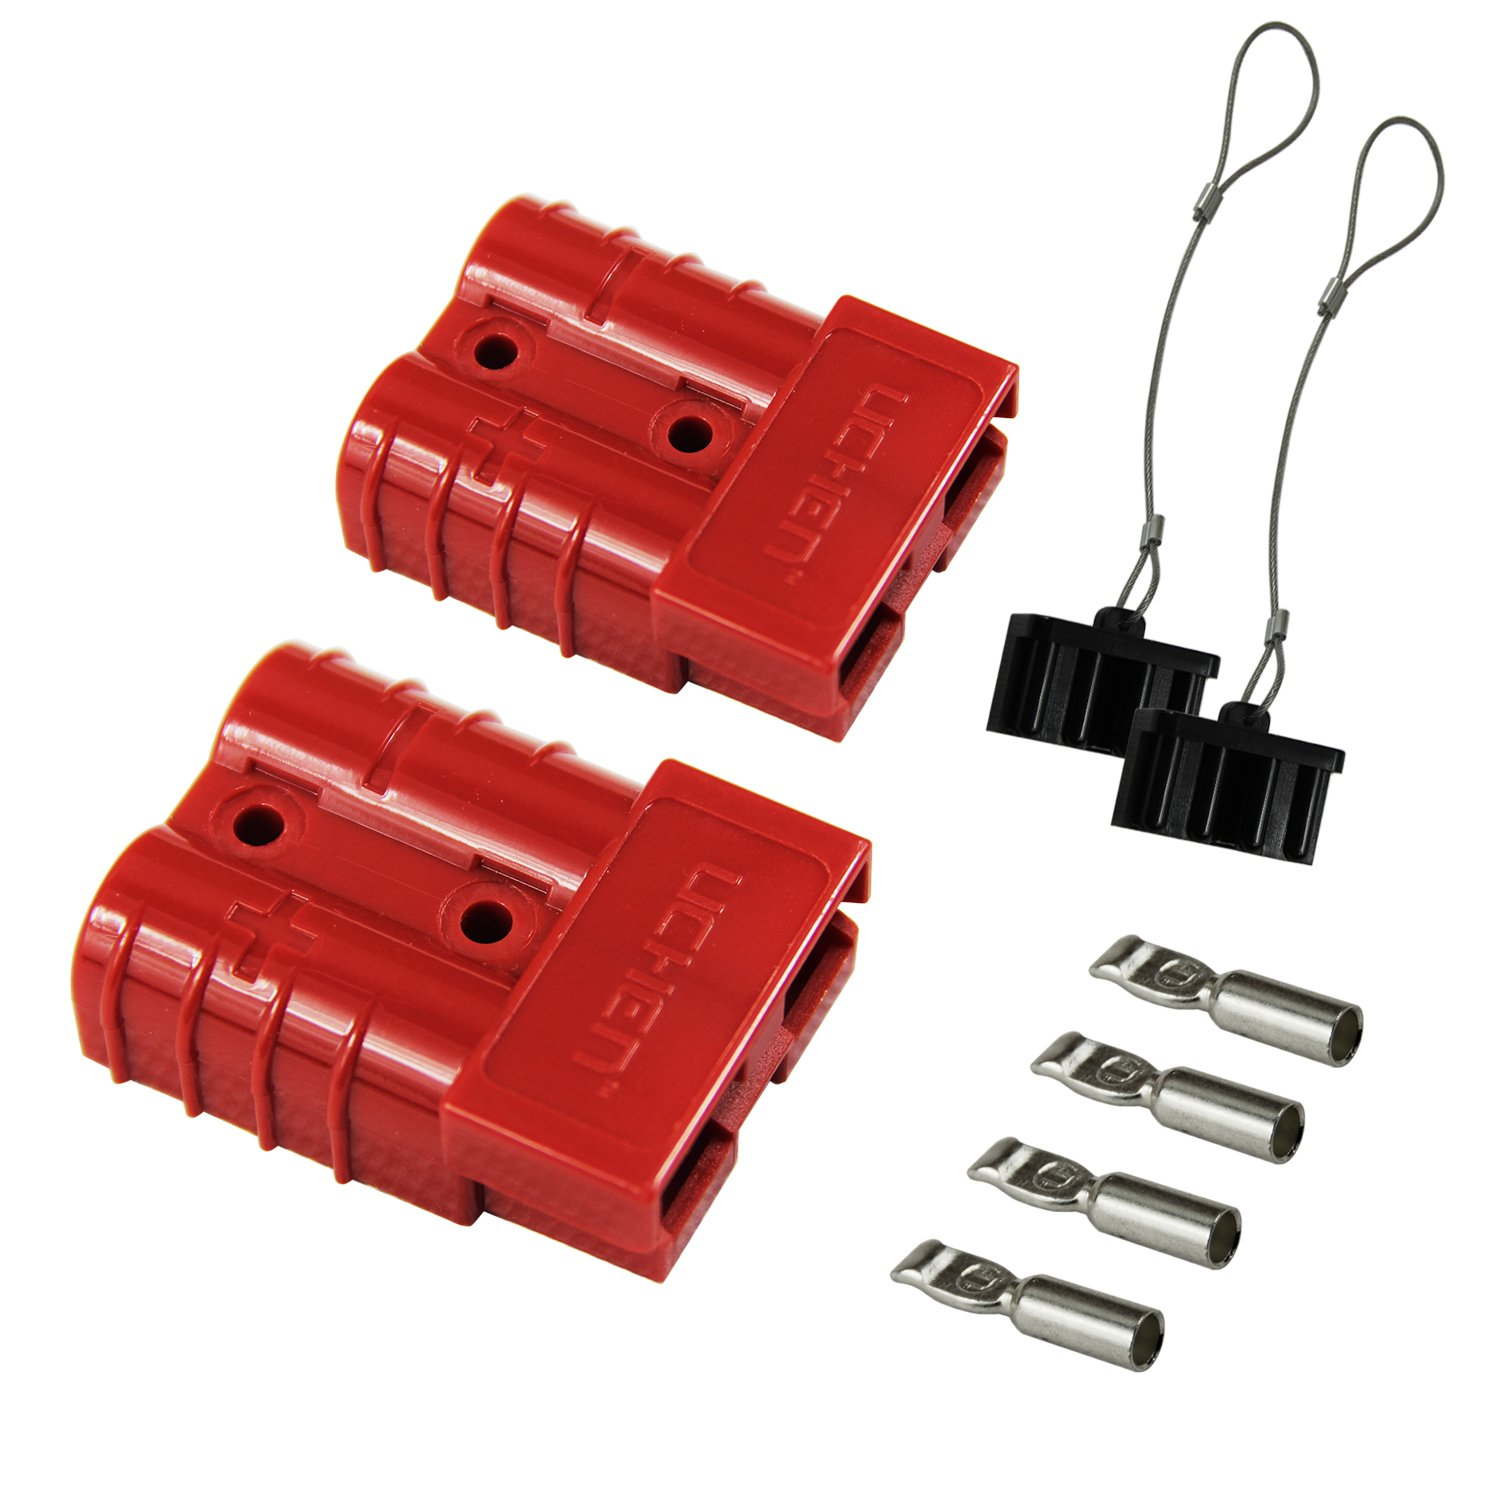 Hyclat Red 6 10 Gauge Battery Quick Connect Disconnect Wiring Harness On Trailer Wire Plug Connector Recovery Winch Automotive